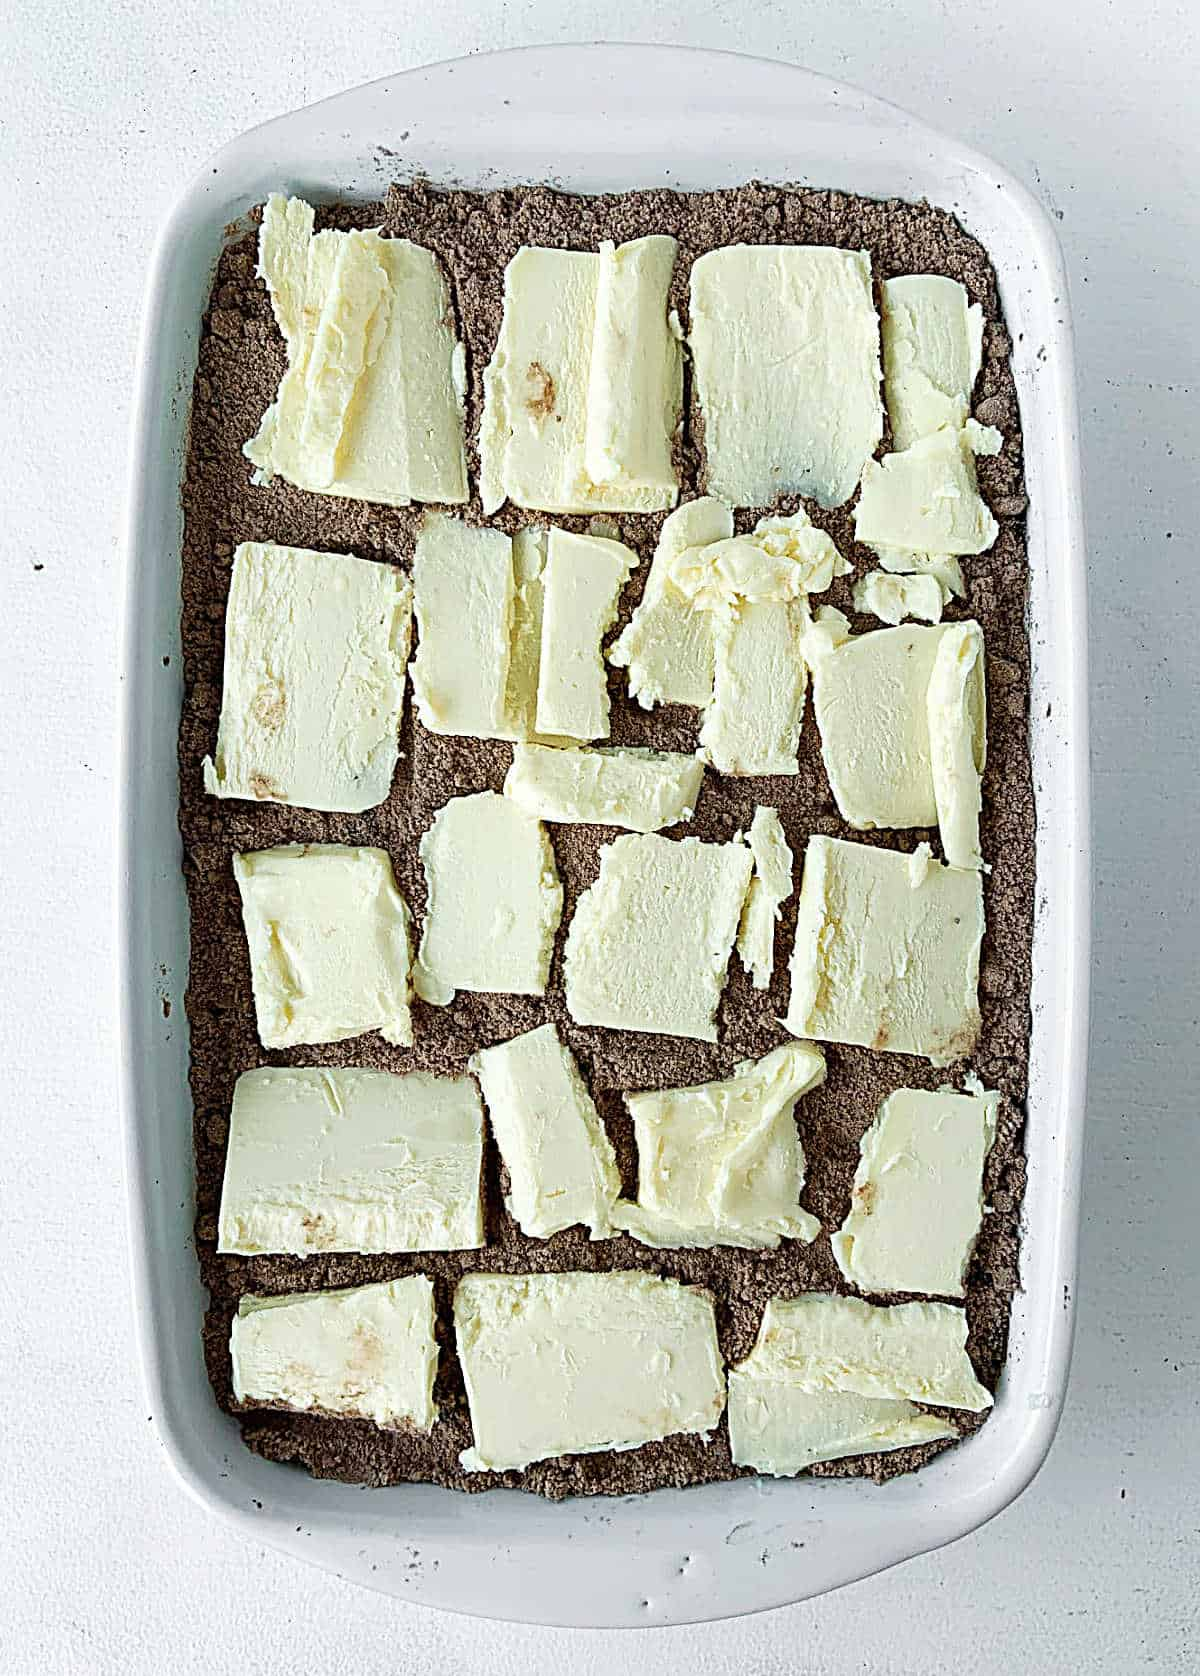 Butter pieces covering chocolate cake mix in rectangular white dish on white surface